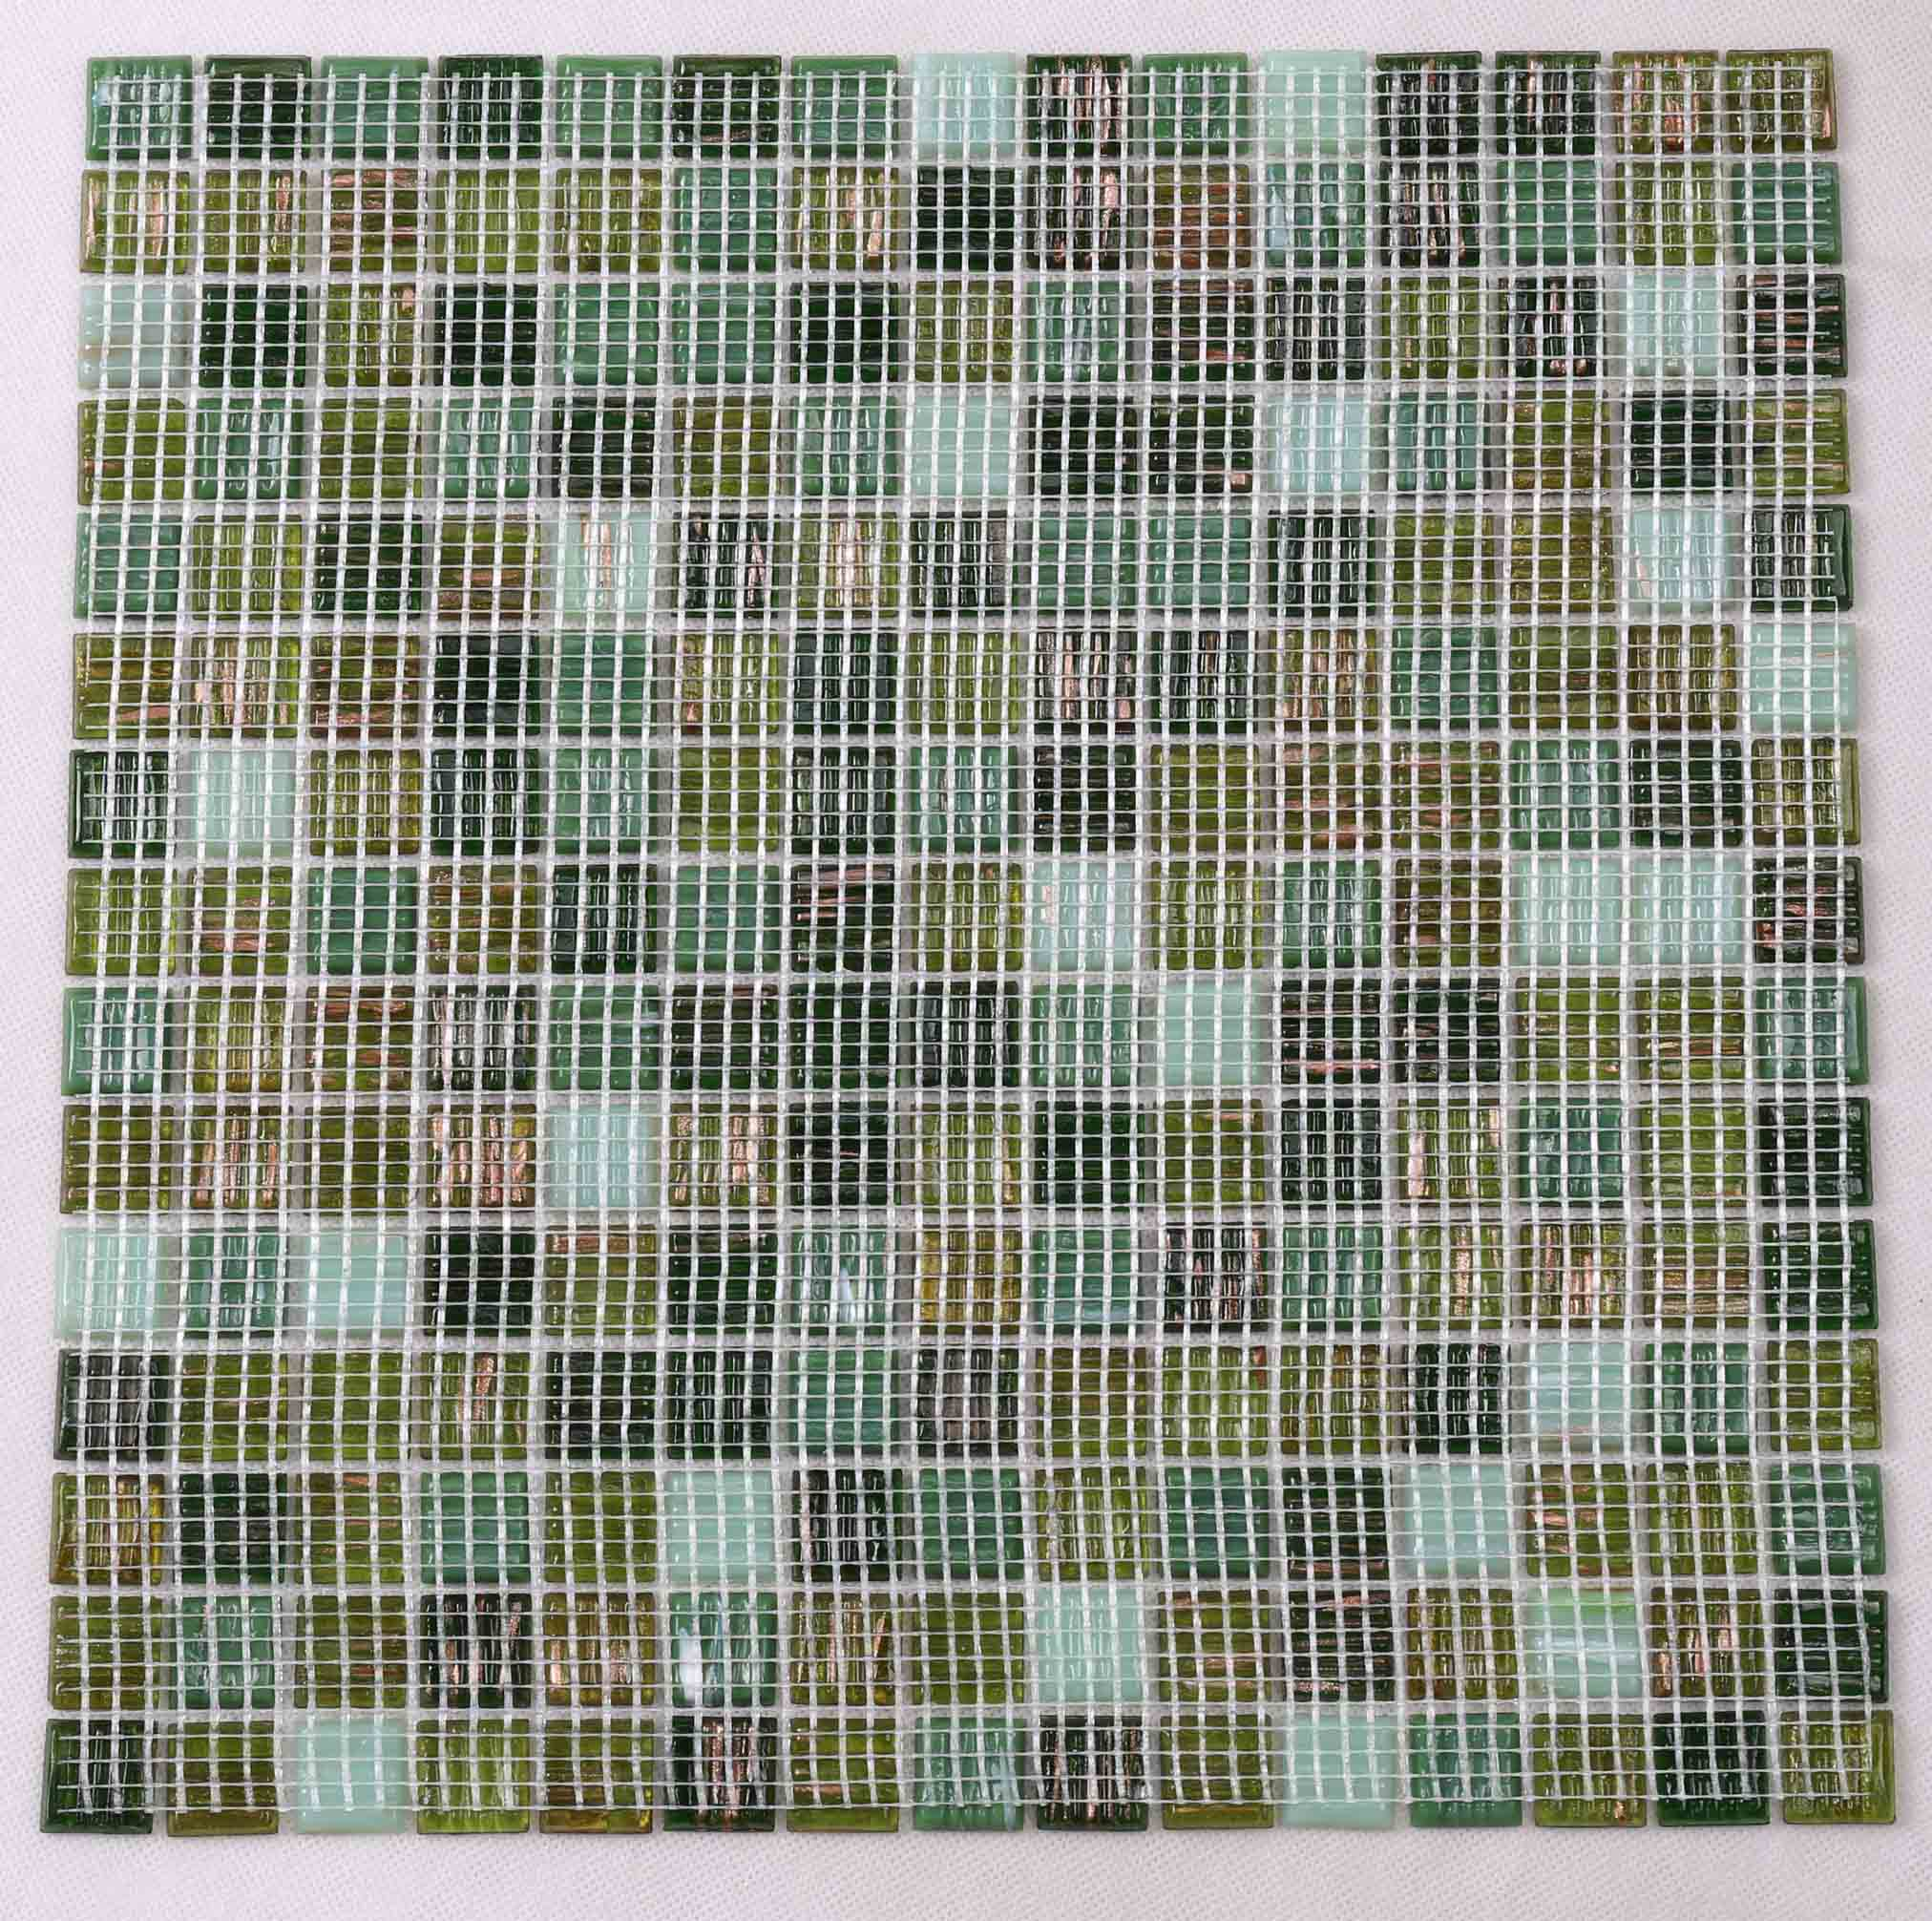 Heng Xing-Oem Odm Grey Pool Tiles | Hengsheng Glass Mosaic-4